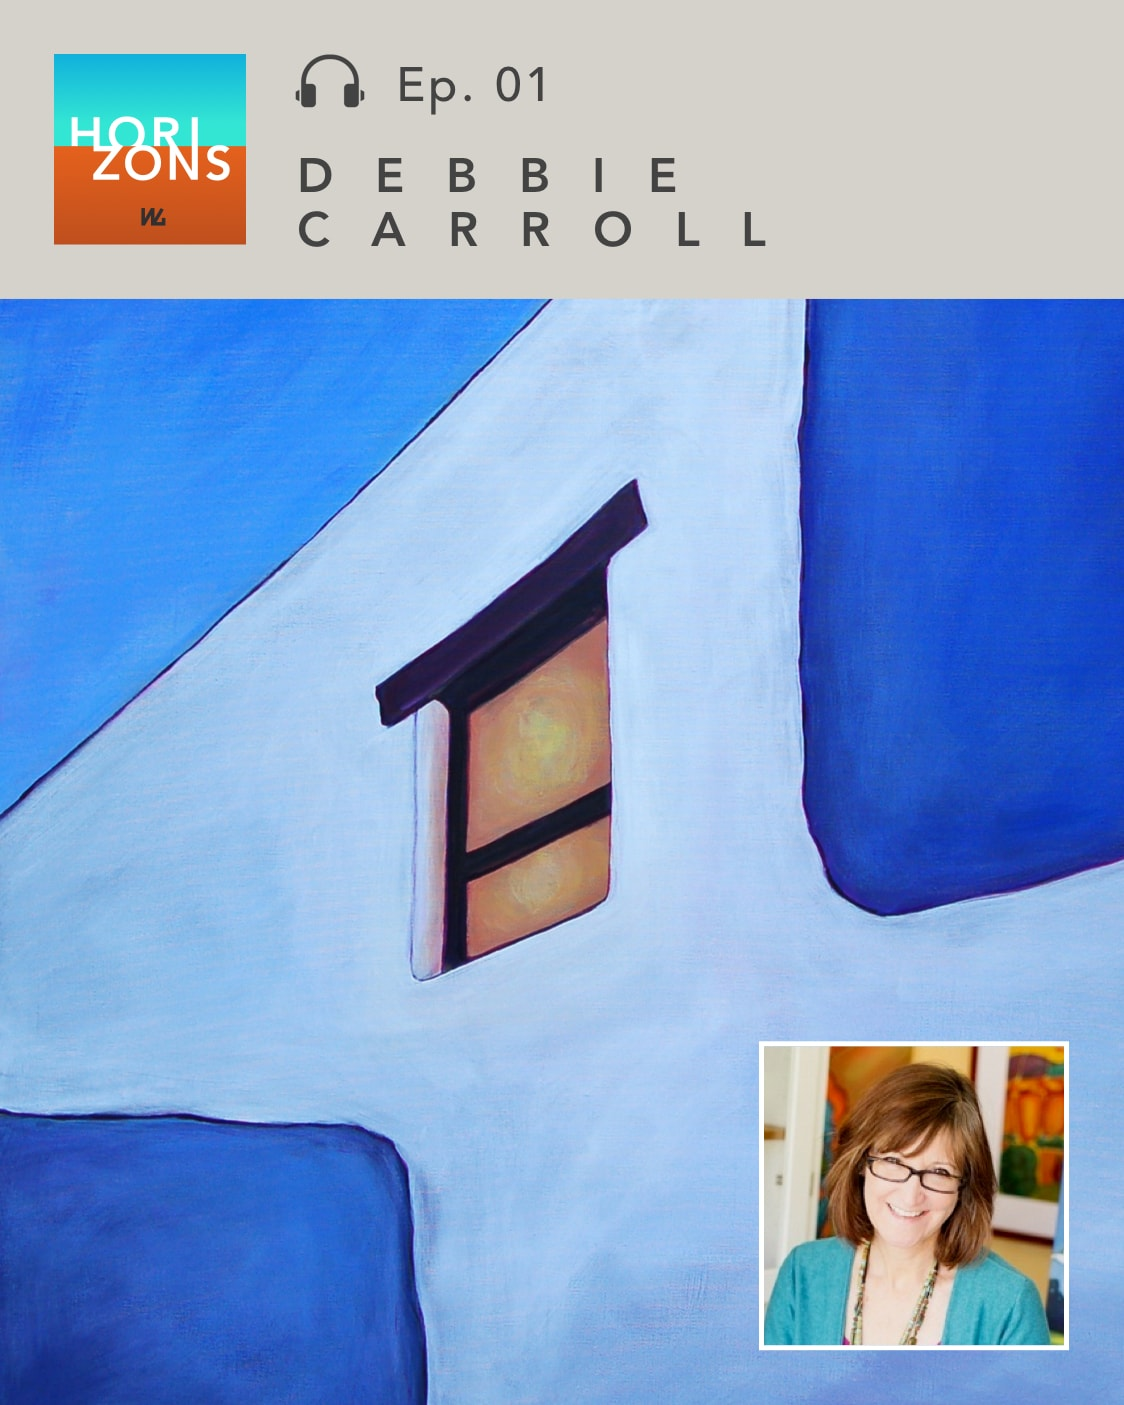 Debbie Carroll on Horizons by Western Gallery